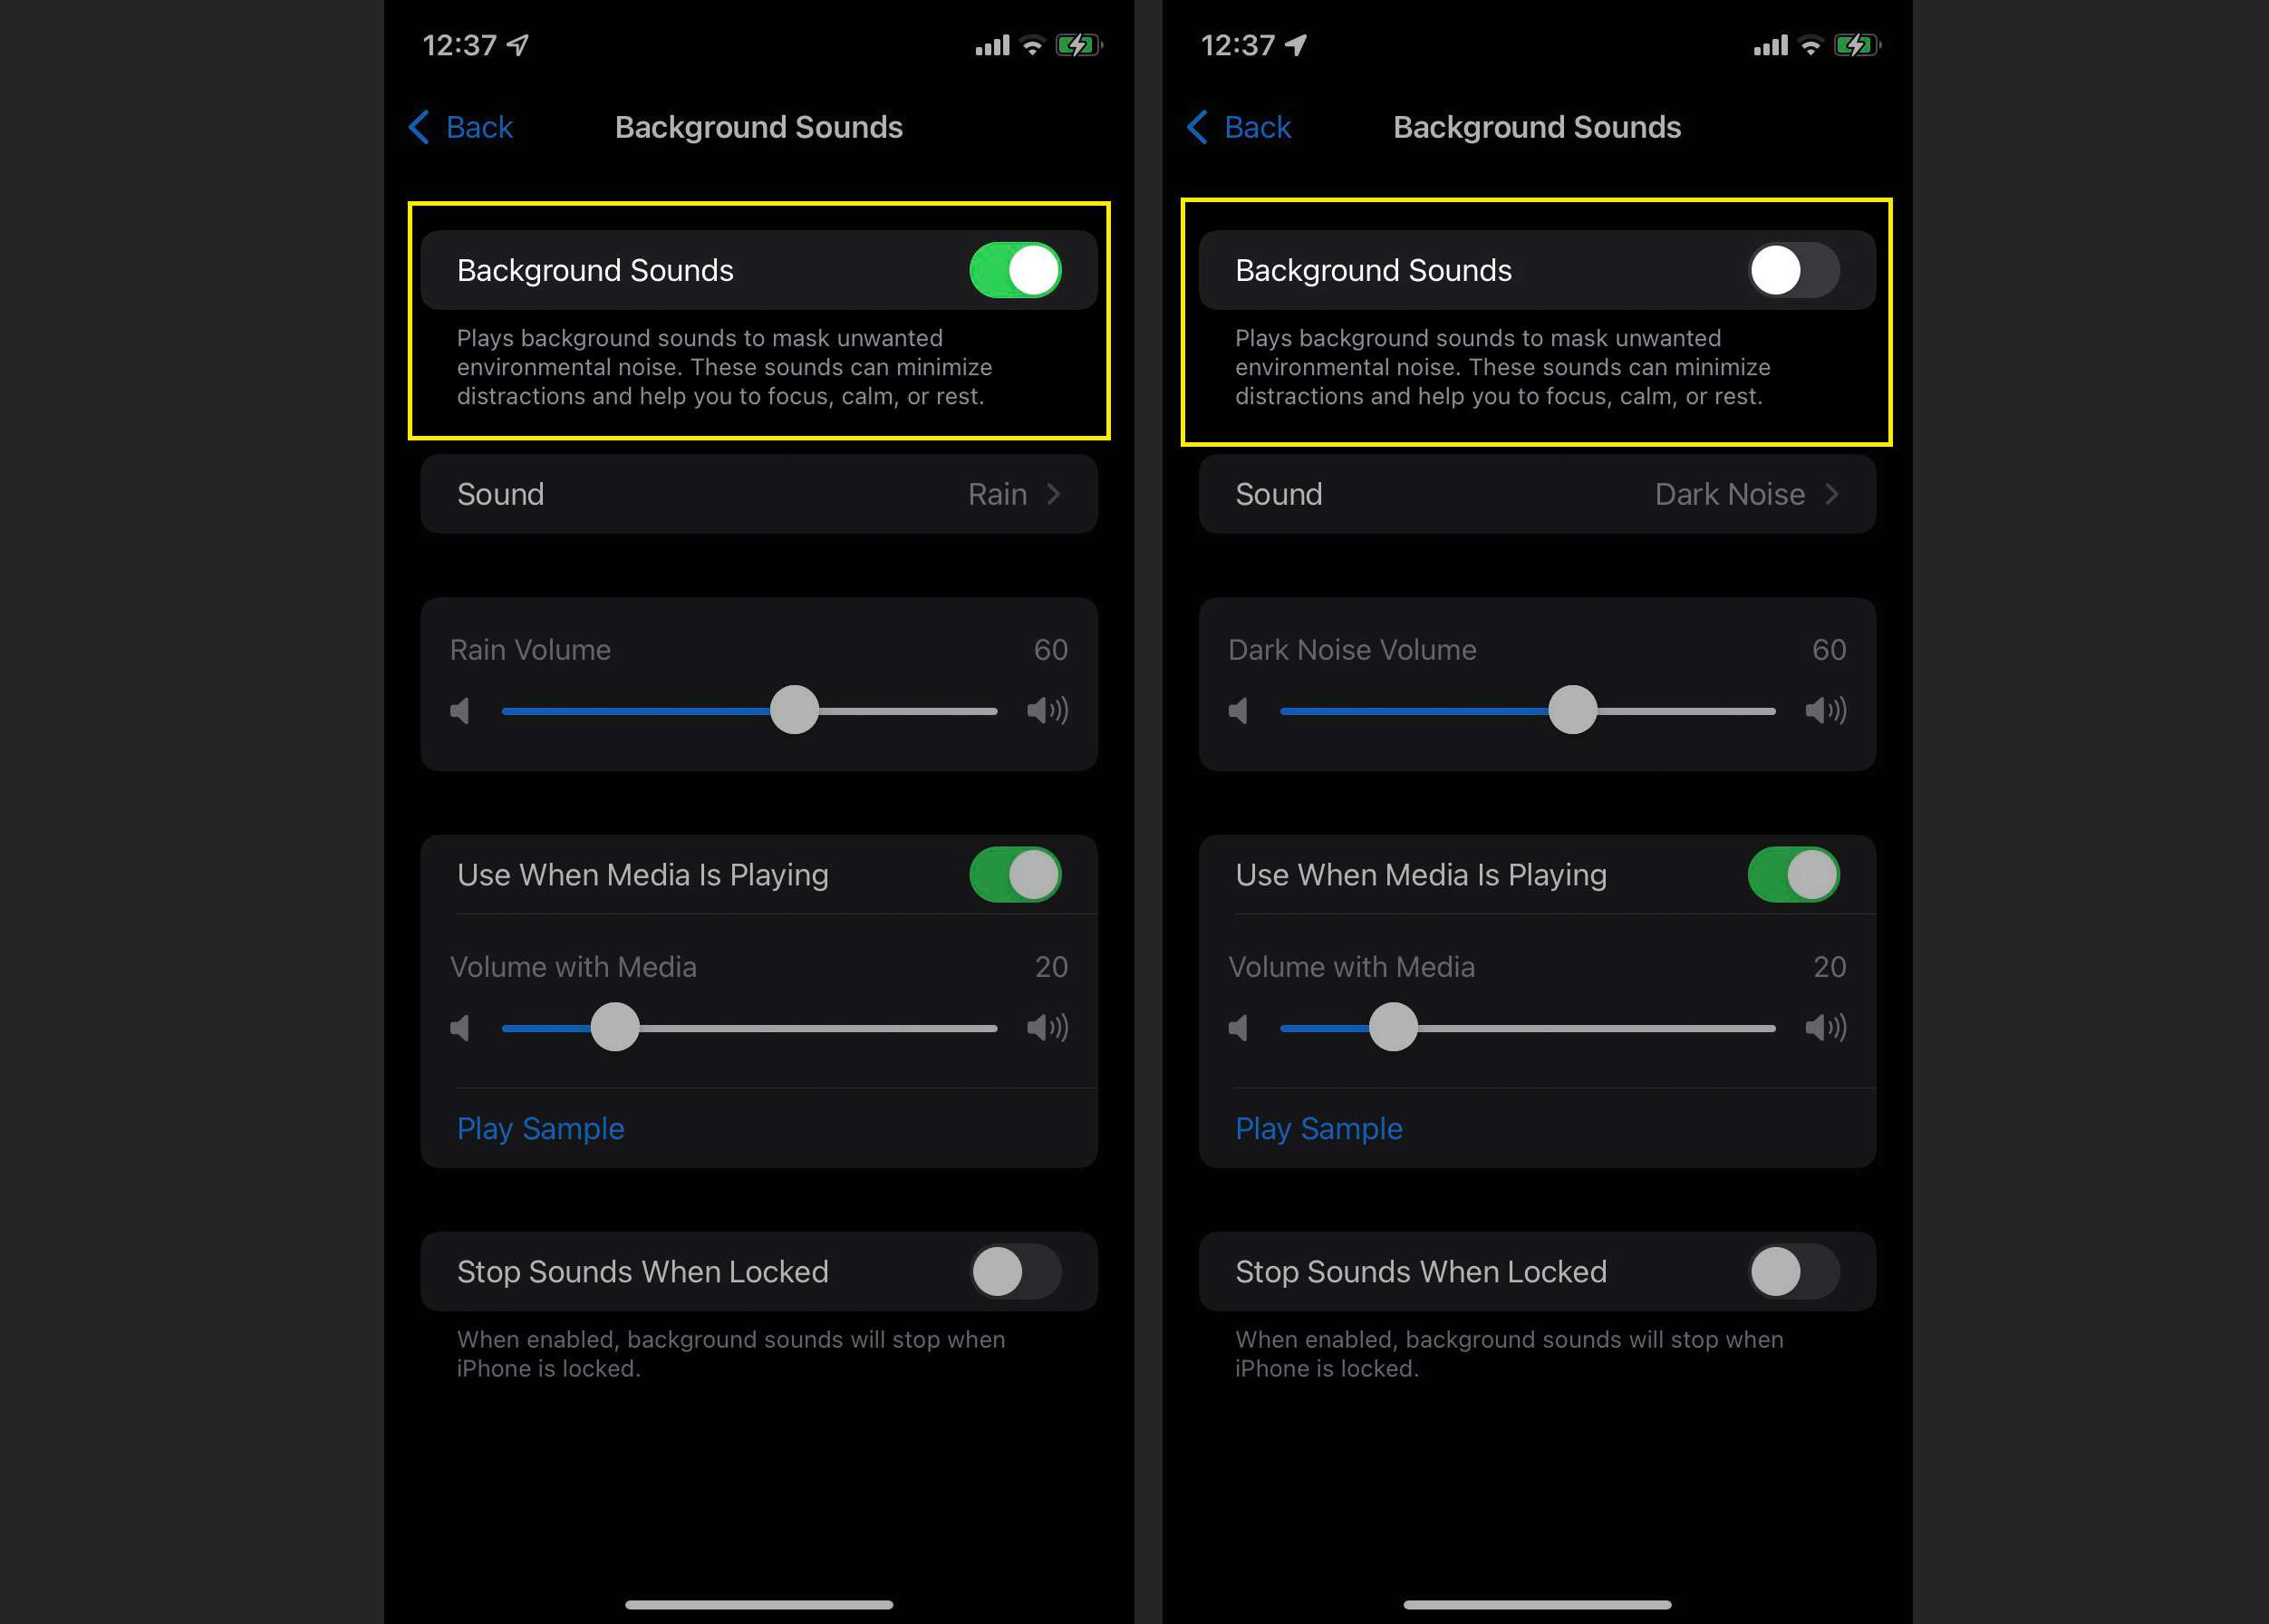 iOS 15 AudioVisual settings on iPhone with Background Sounds toggled on and off highlighted